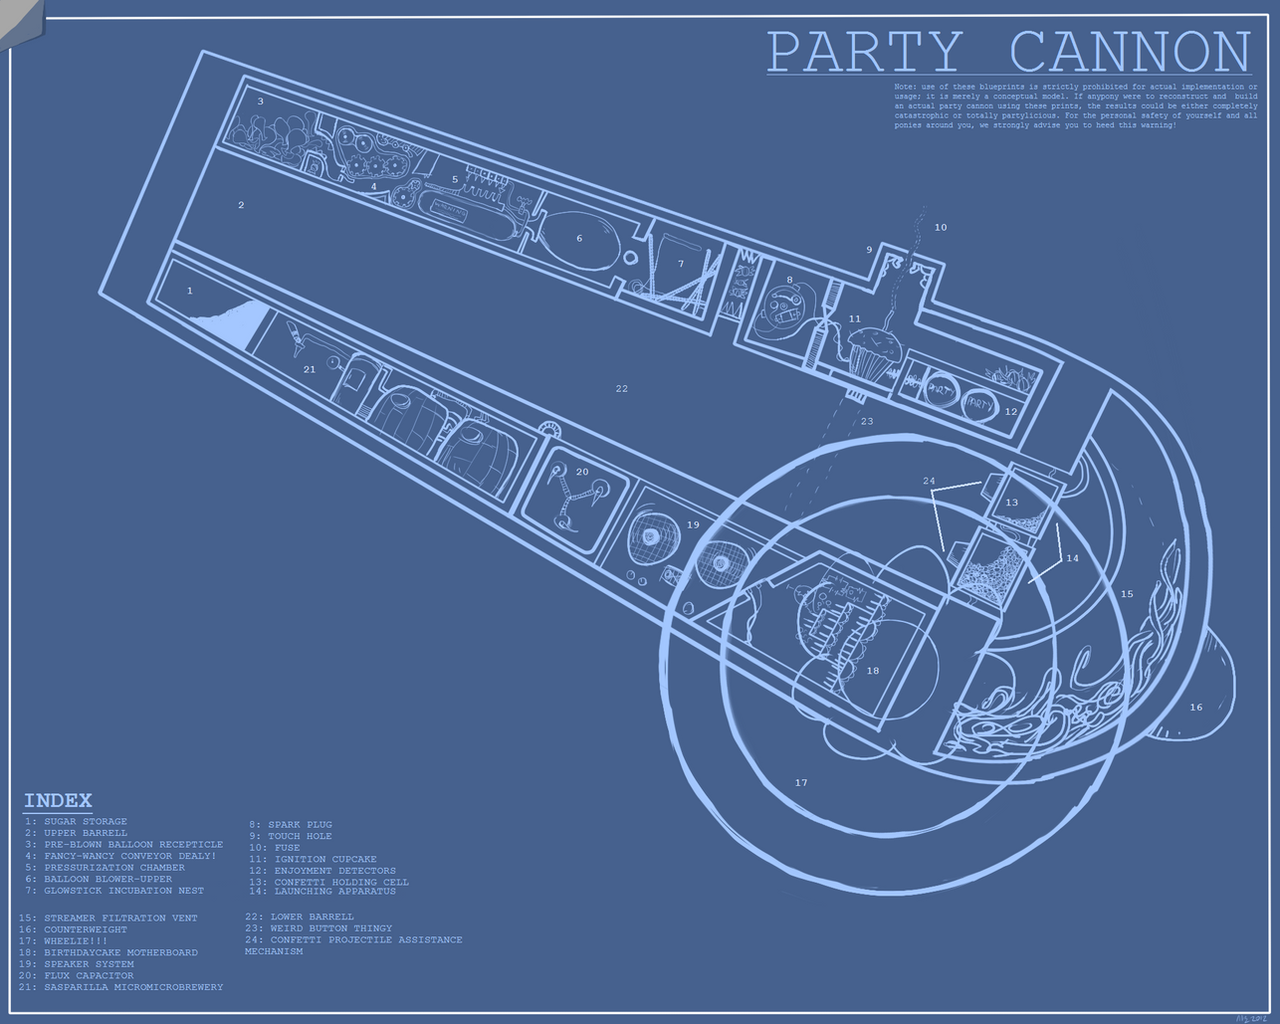 Party cannon blueprints by doctorpepperphd on deviantart party cannon blueprints by doctorpepperphd party cannon blueprints by doctorpepperphd malvernweather Gallery